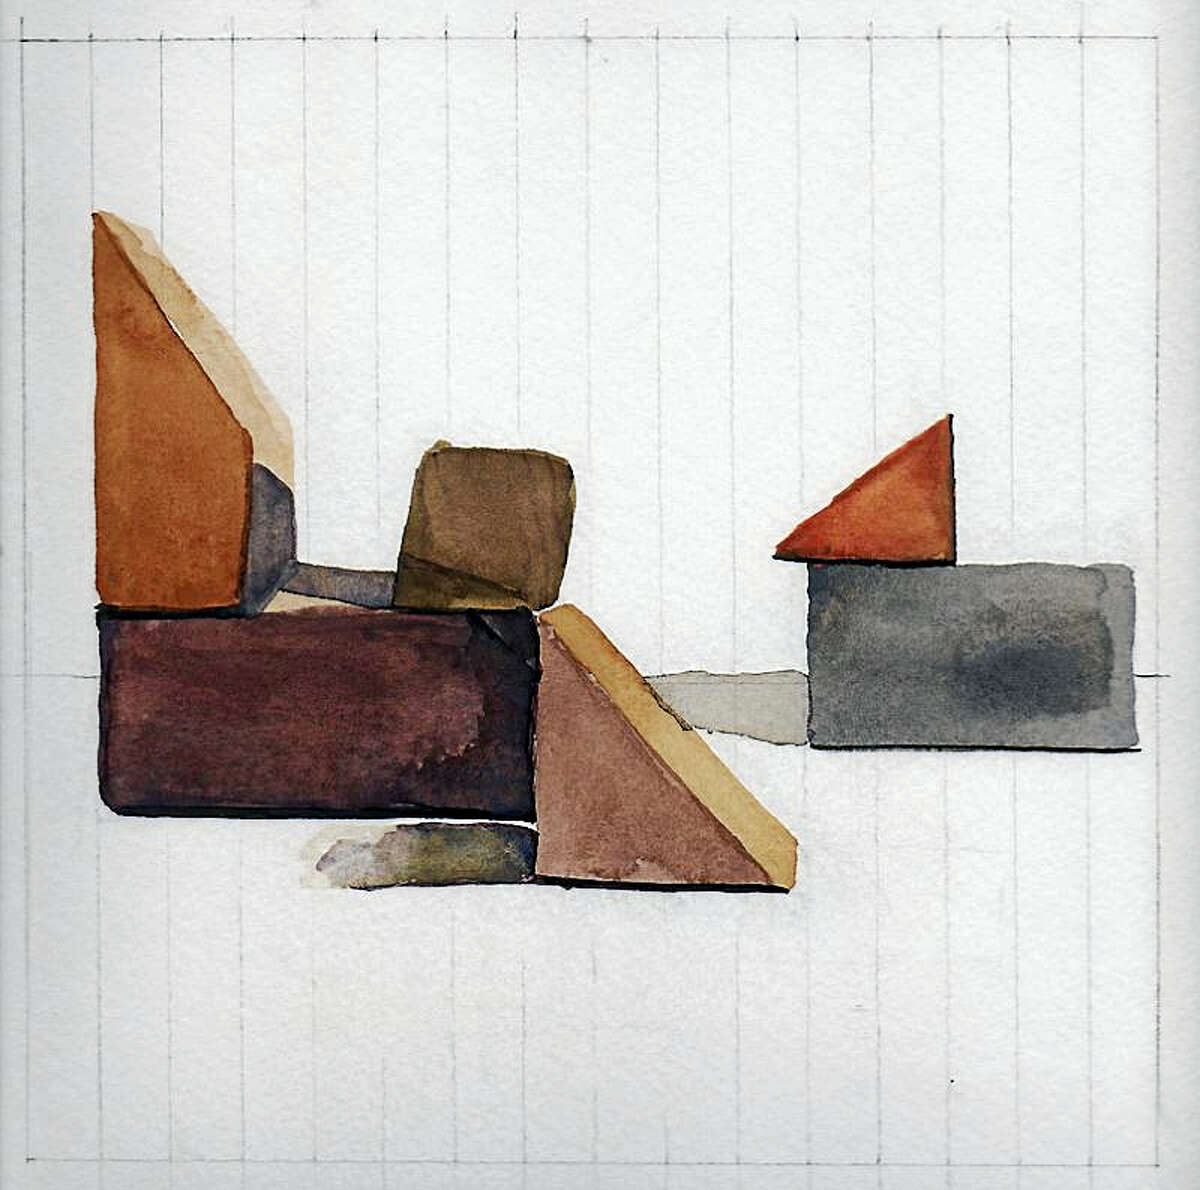 Works by Megan Marden are part of a new show opening in March at the Washington Art Association.